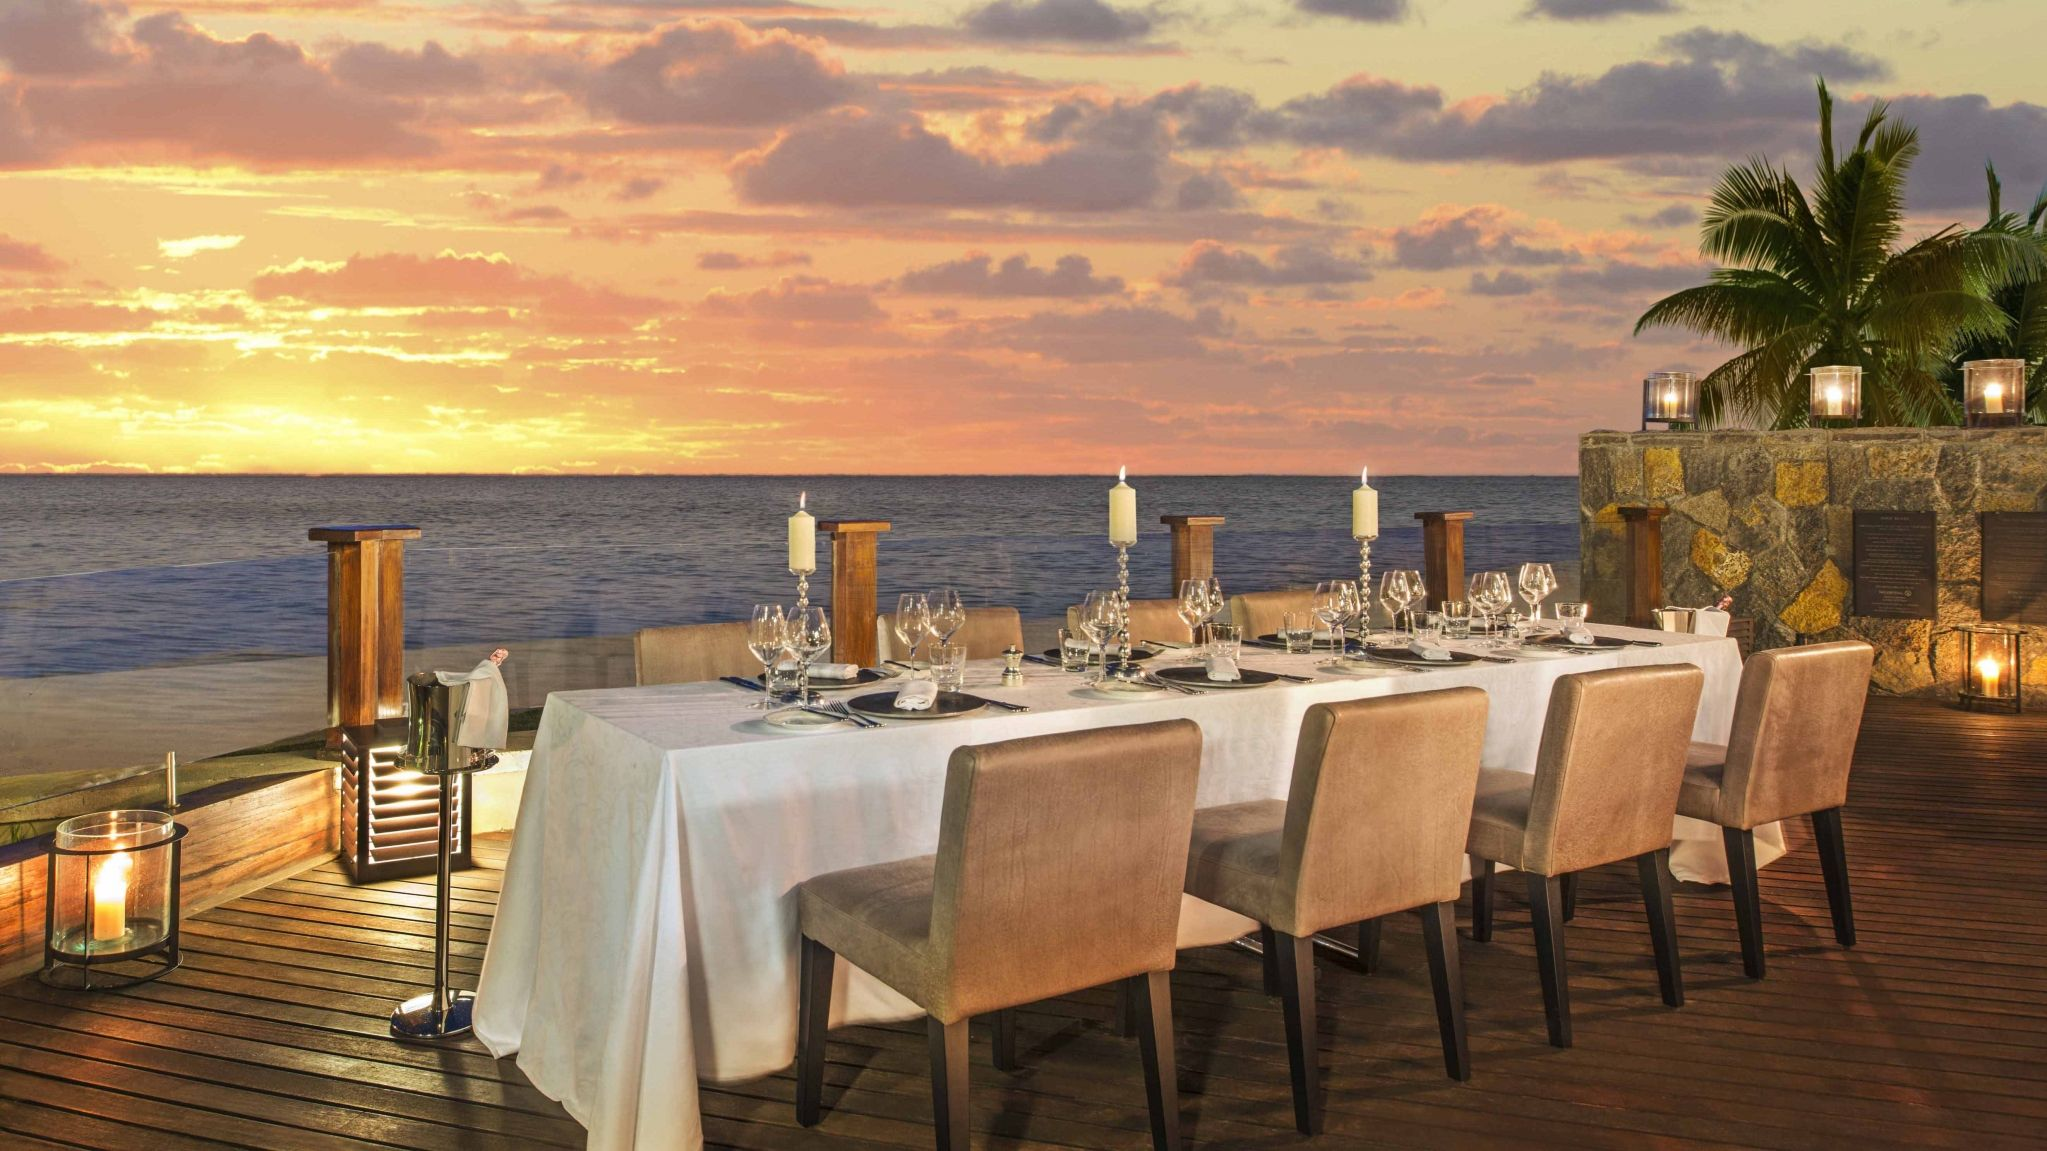 The St. Regis Mauritius Resort Dining with sun set over ocean